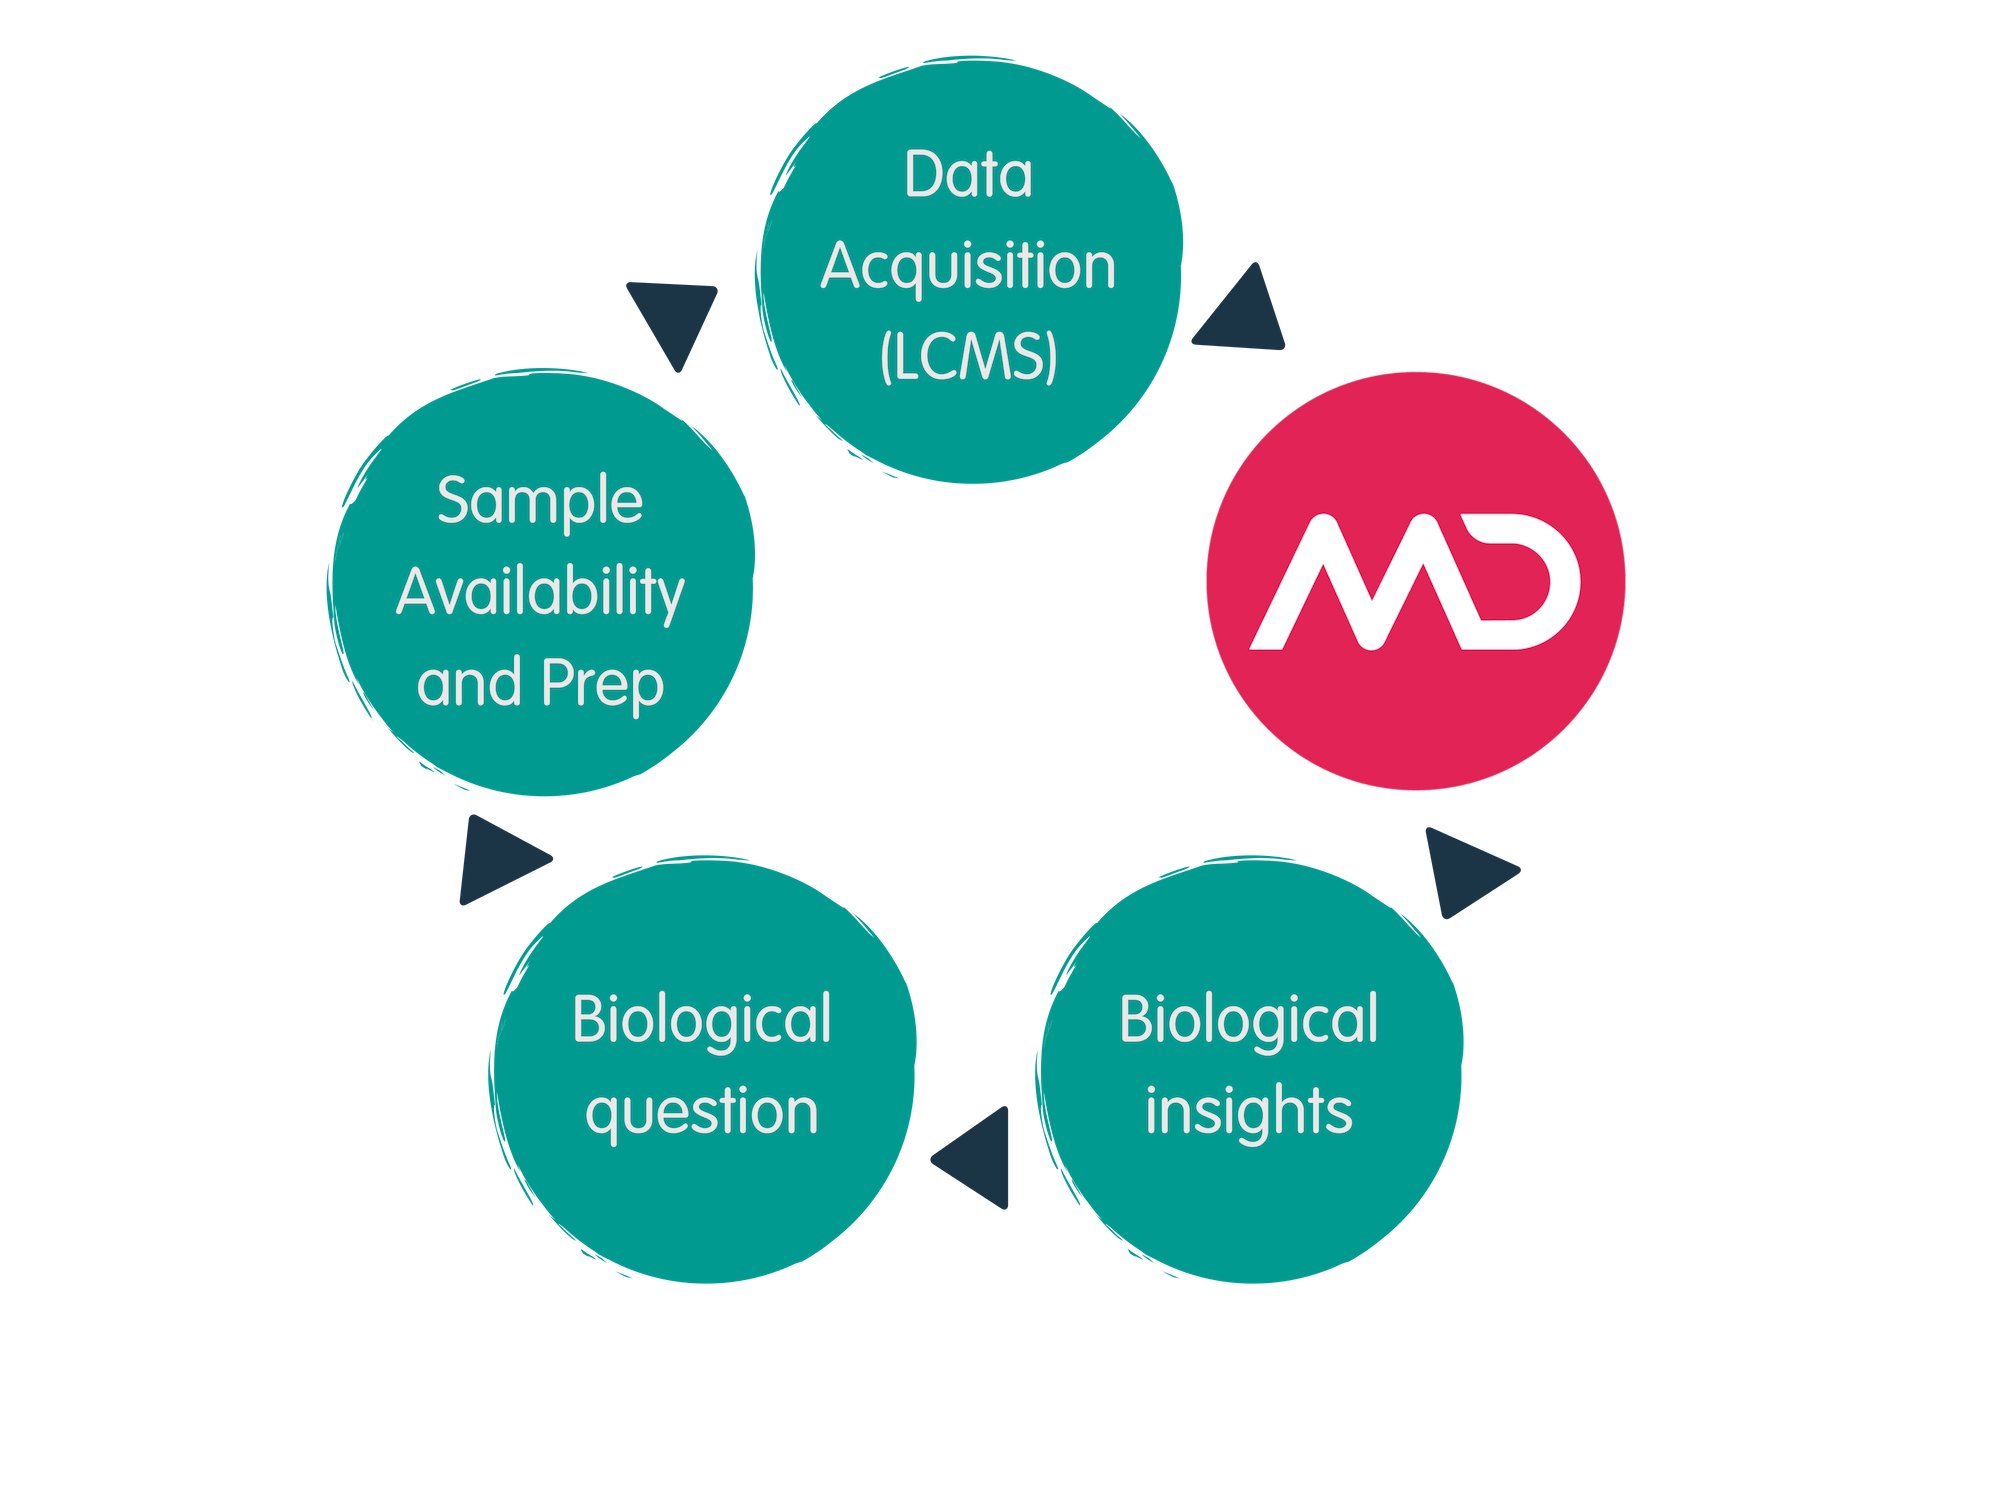 Get started quickly and experiment continuously - We've made it easy to start unlocking the power of MS and Proteomics so you can focus on the biological complexity and move closer to the moment of discovery. Our automated and repeatable workflow allows for quicker experiment startup and turnaround times, giving you the control and flexibility to make and act on decisions in the moment.